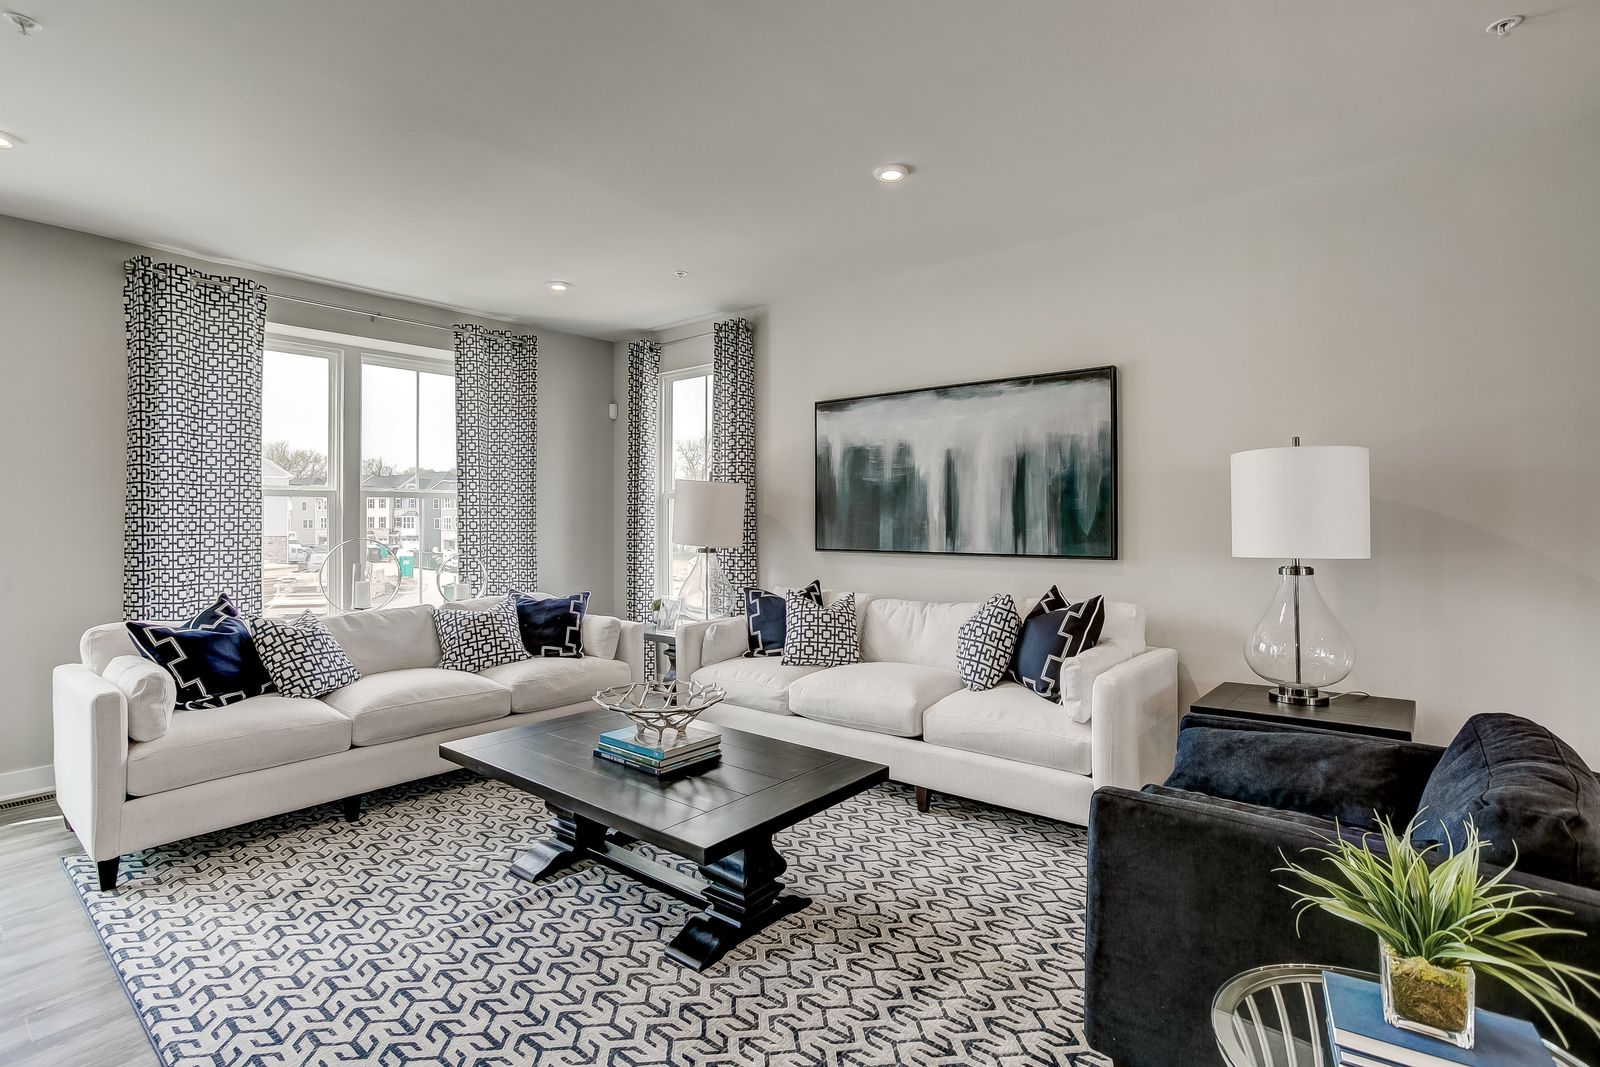 Living Area featured in the McPherson By Ryan Homes in Washington, MD